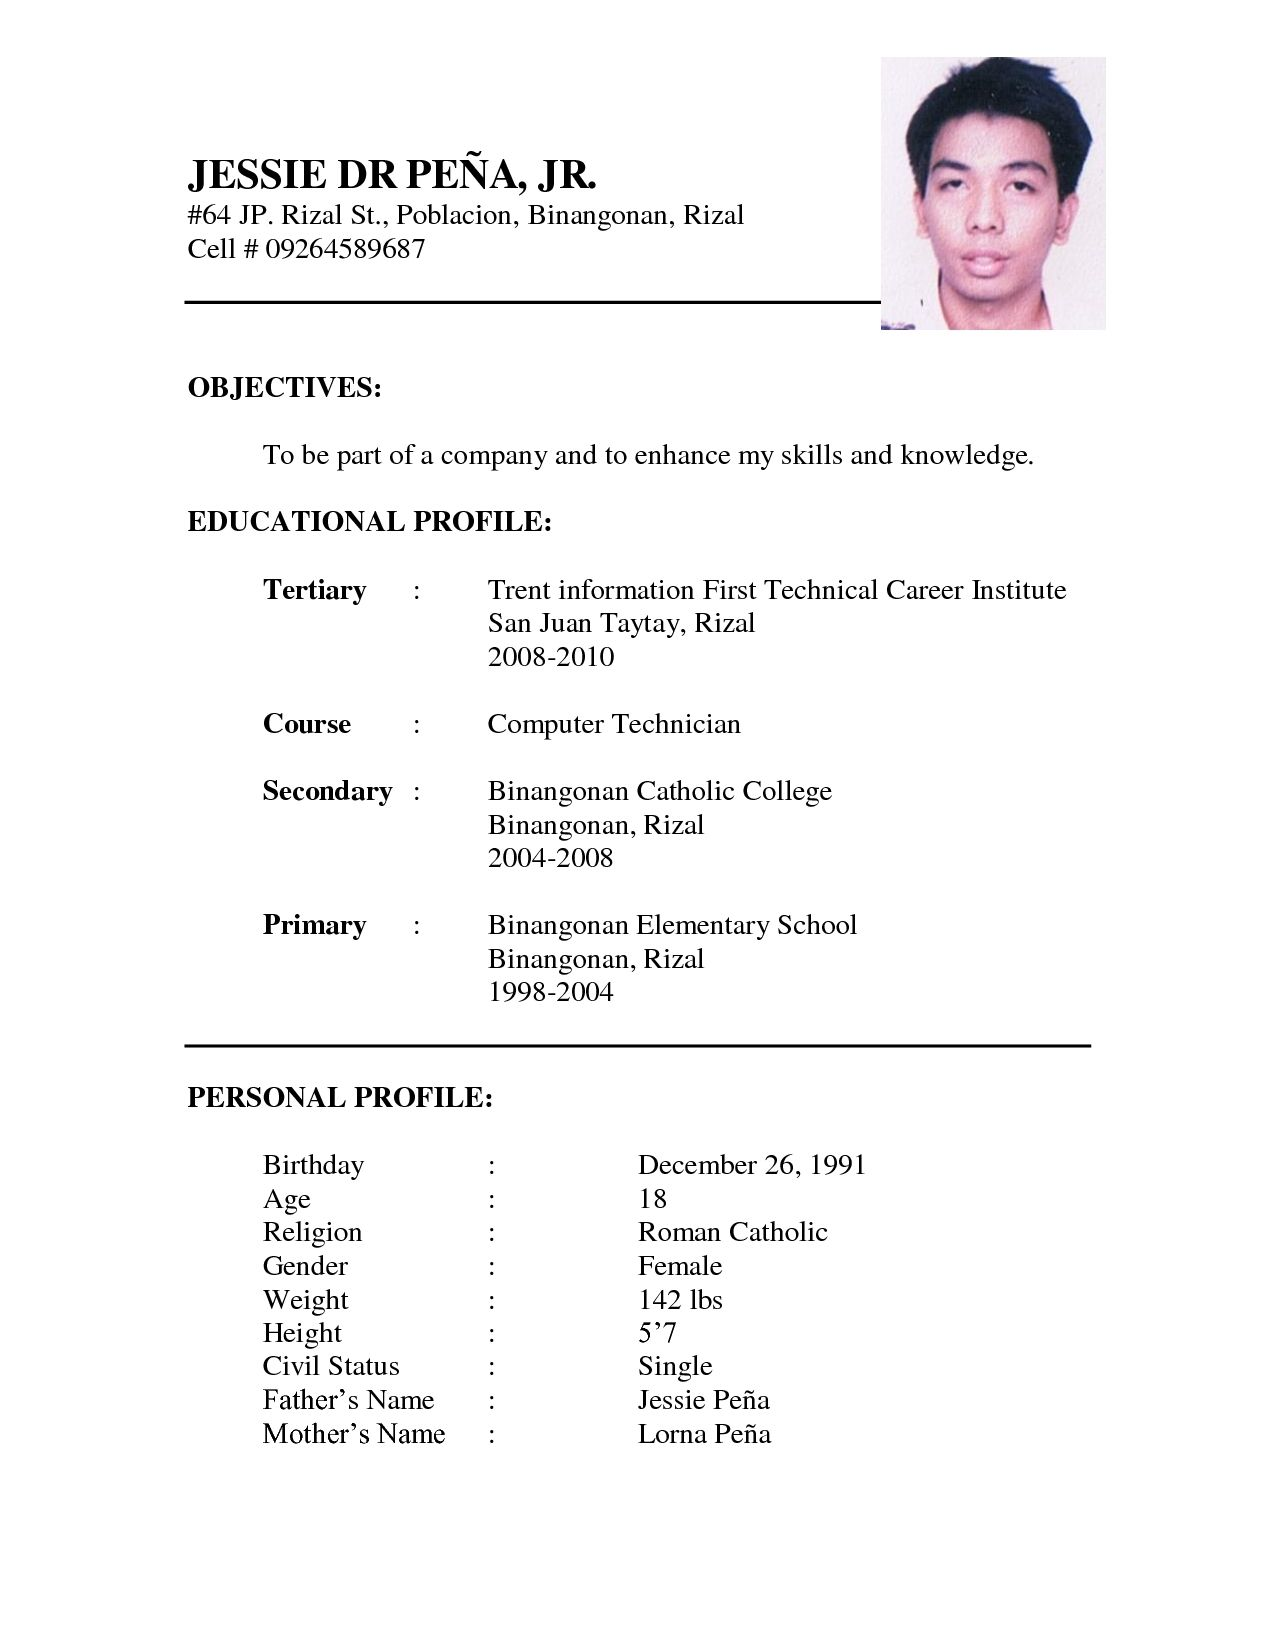 Alluring General Resume Format Doc About Free Resume Templates Simple Maker Acting Format Doc Rega Job Resume Format Job Resume Examples Resume Format Examples